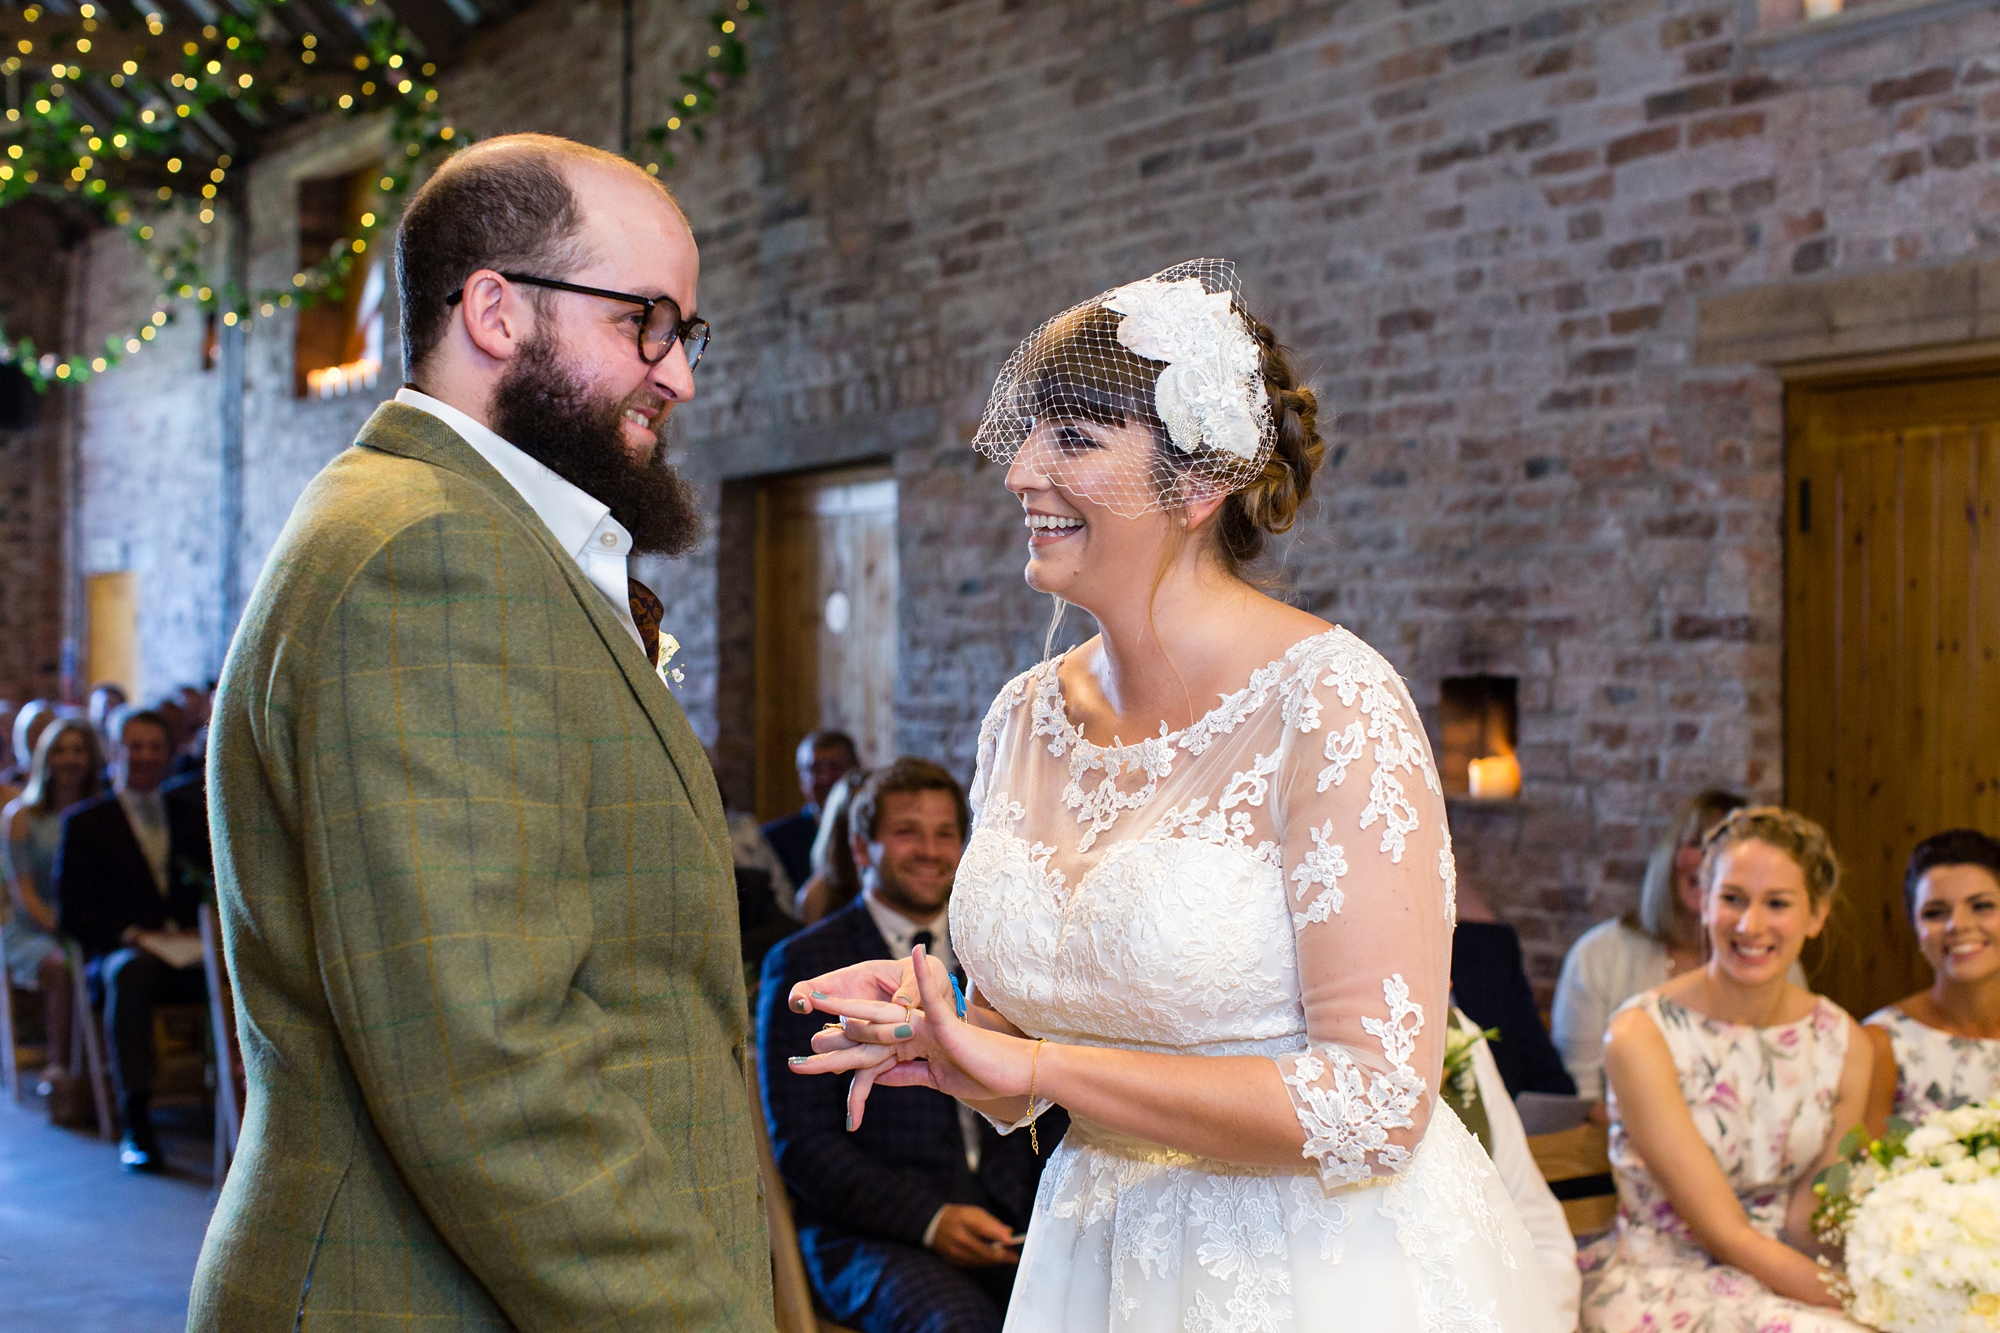 York Wedding Photography at Barmbyfield Barns exchange of rings in ceremony